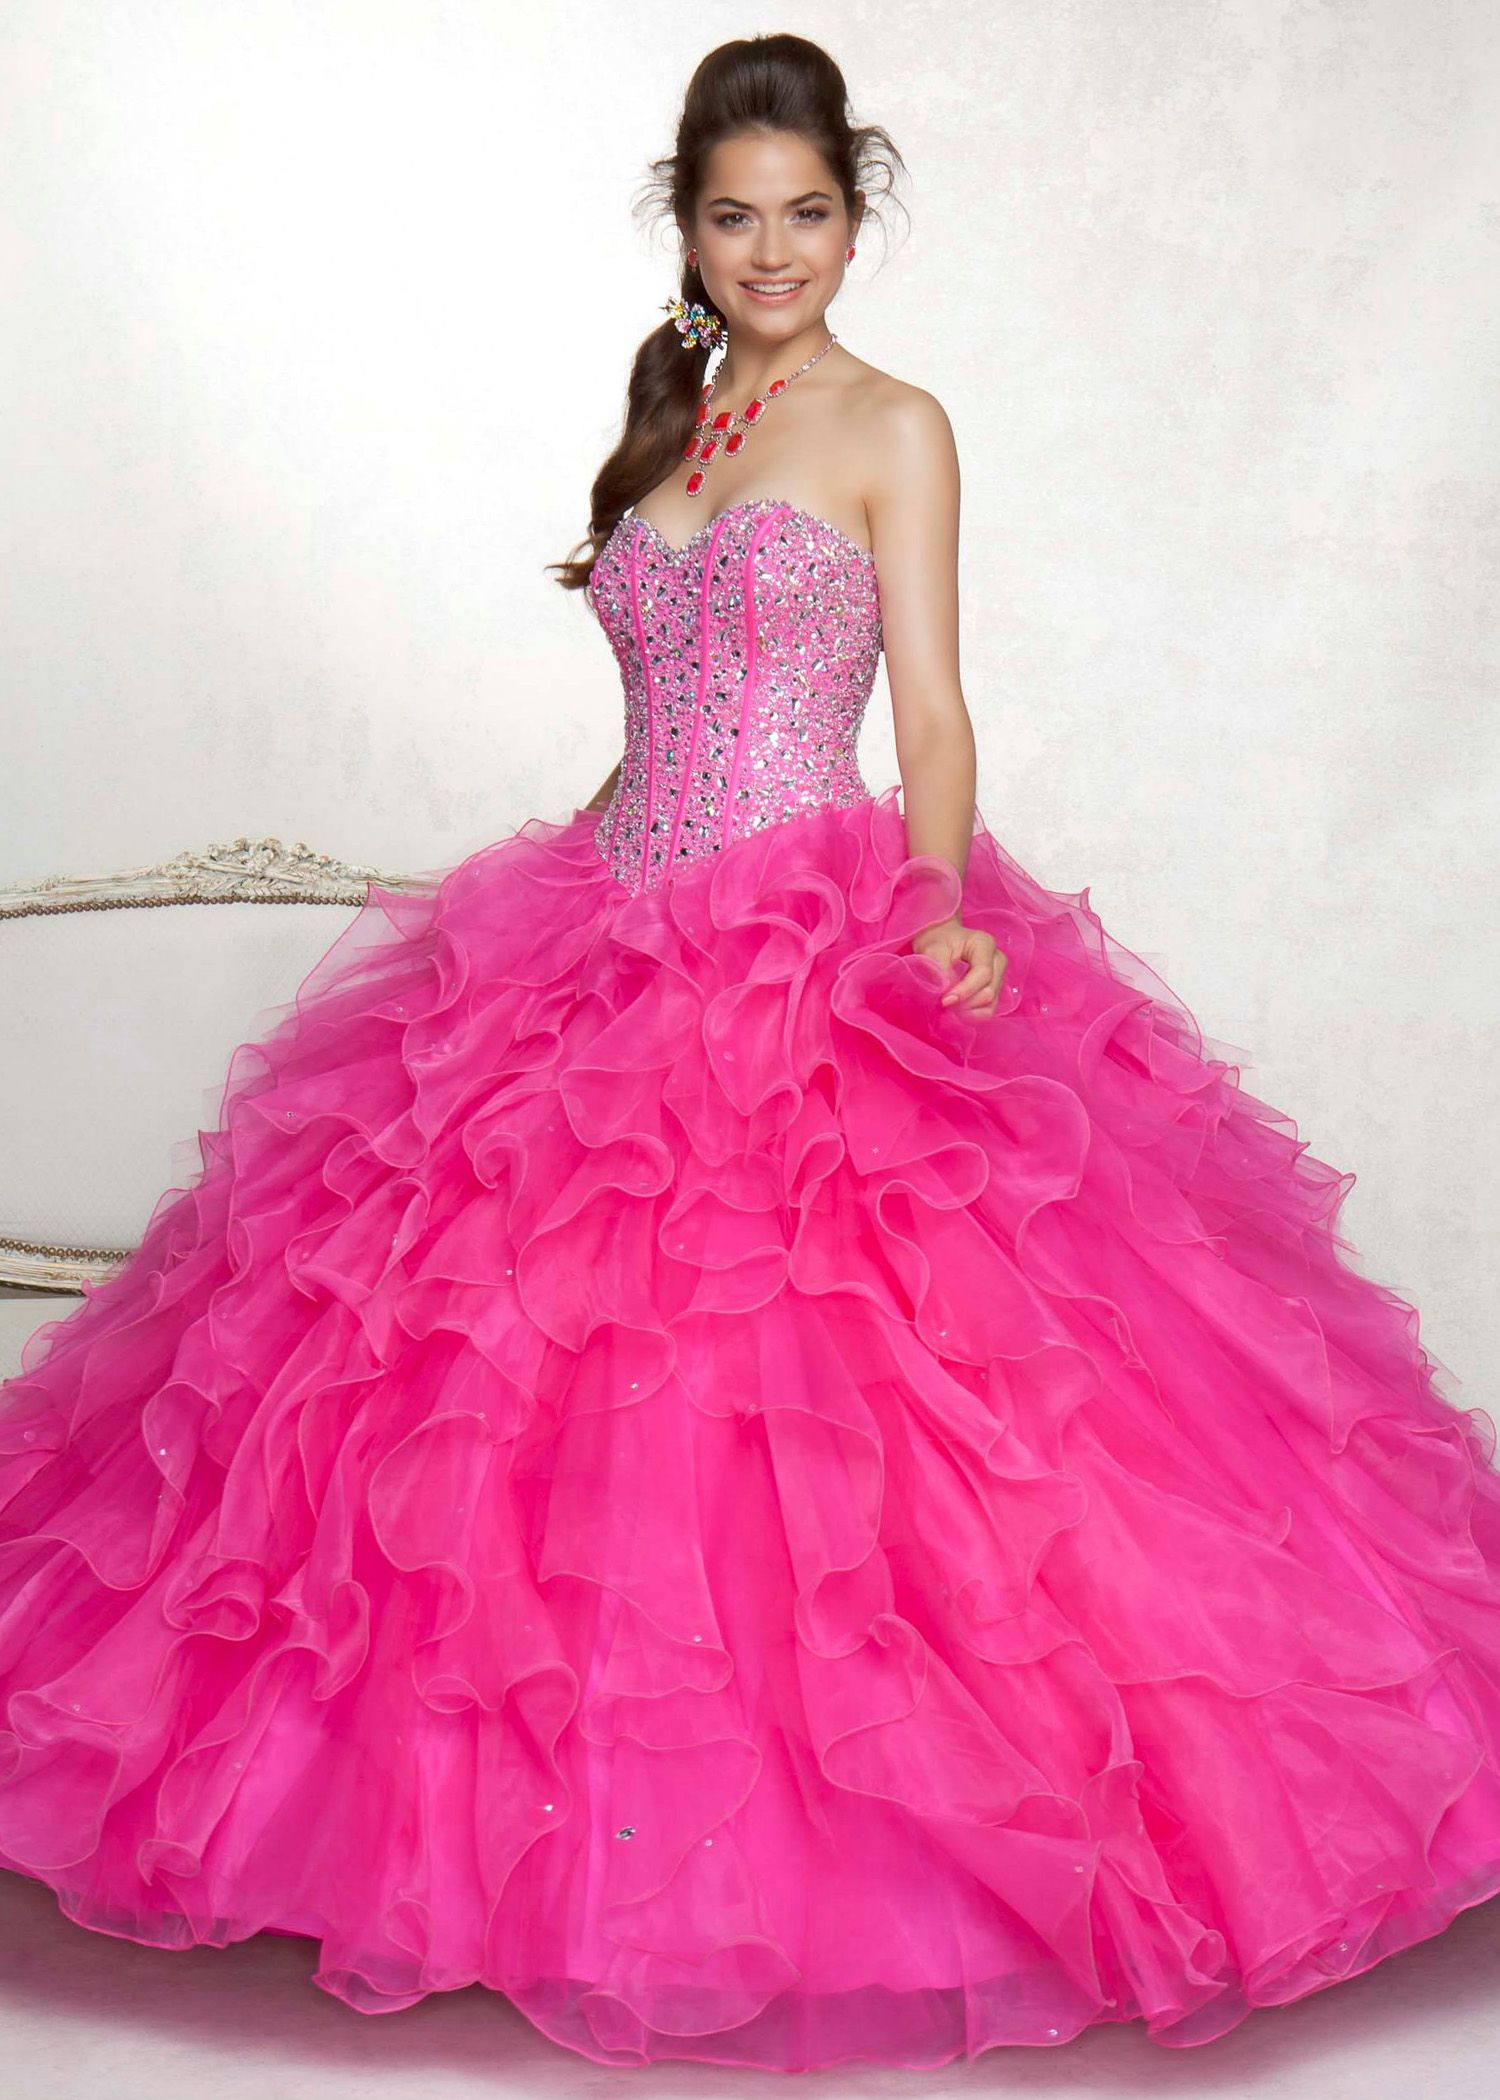 1000  images about PINK ballgowns (wedding) on Pinterest  Pink ...